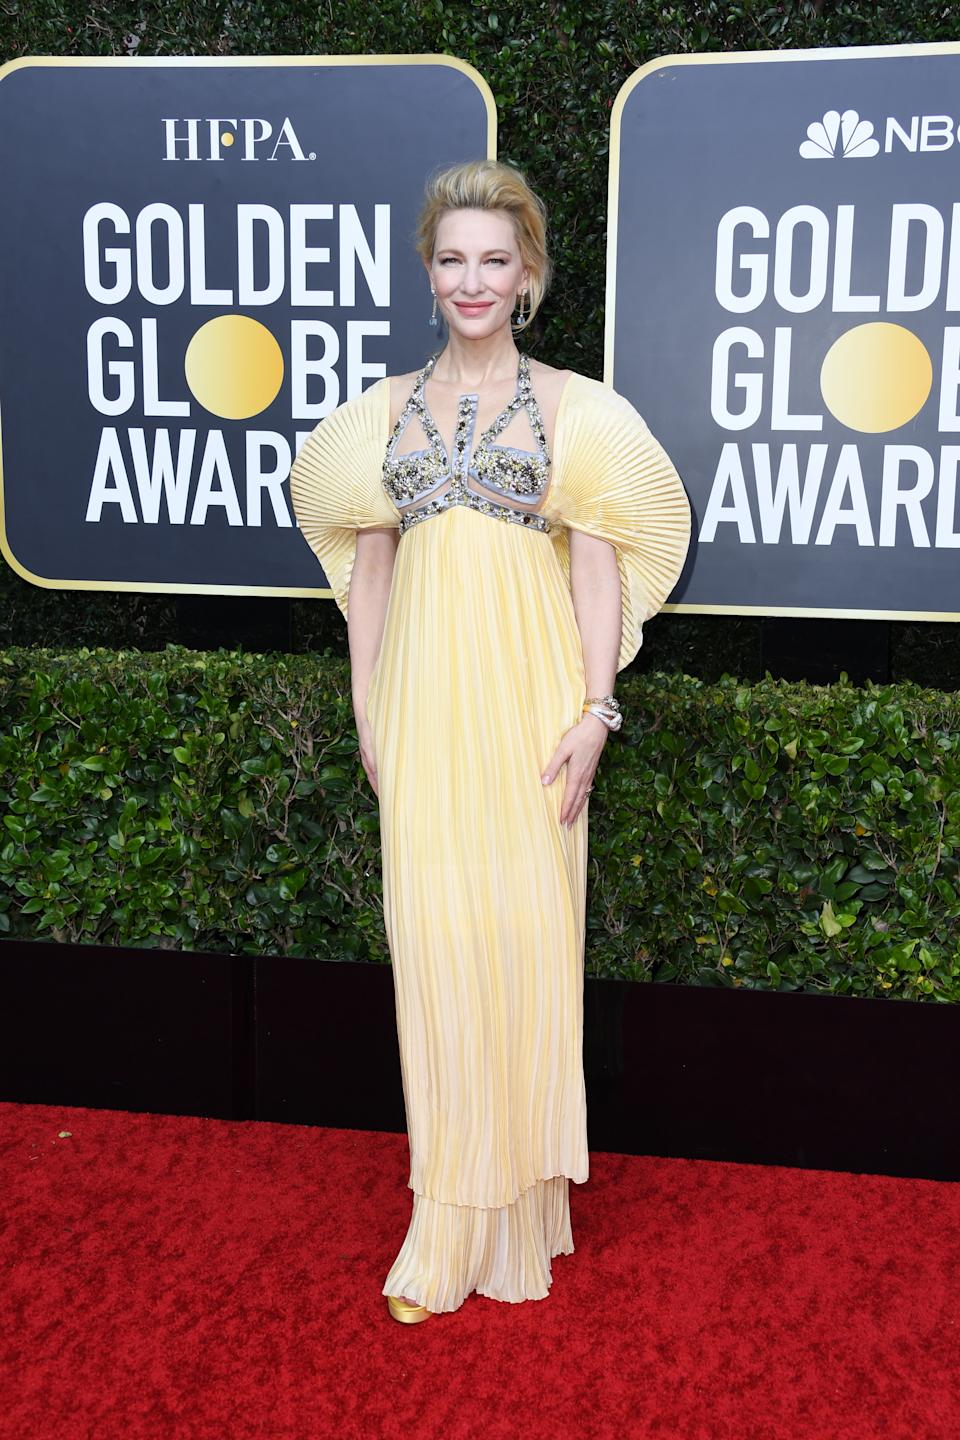 Always a red carpet standout, Blanchett wowed in a soft yellow look by Mary Karantzou. (Photo by Jon Kopaloff/Getty Images)